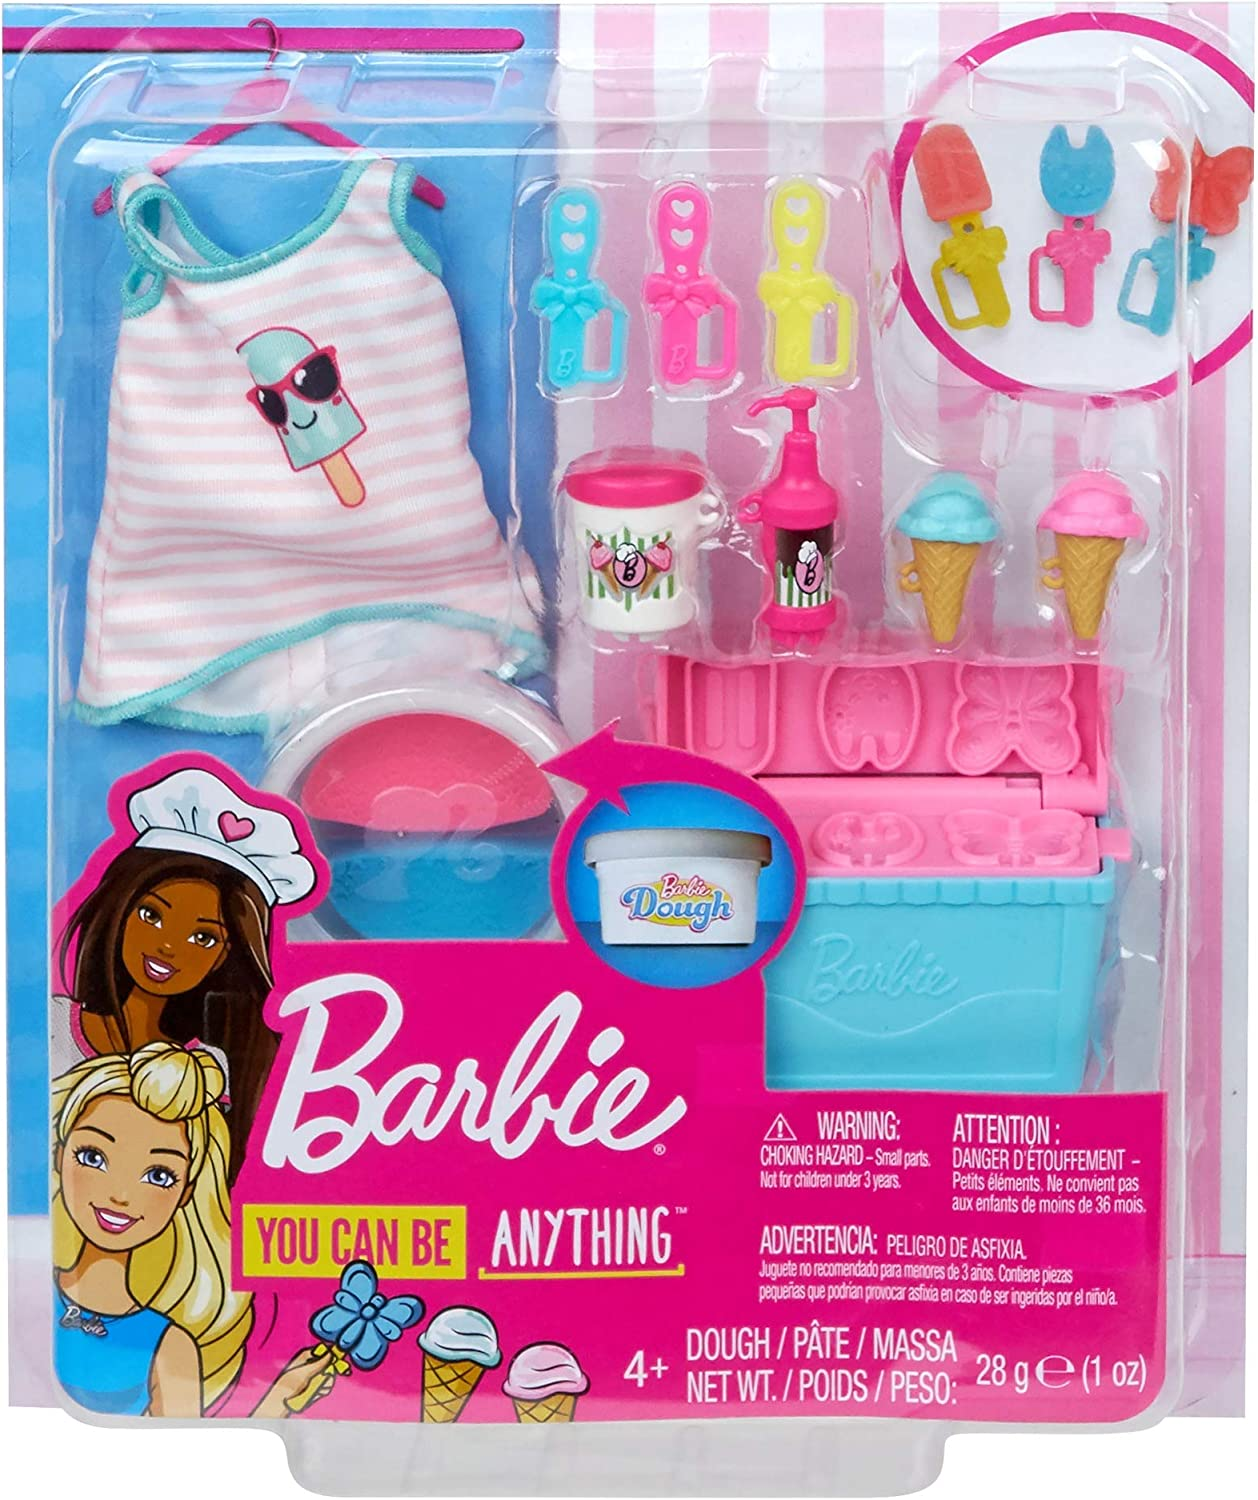 Barbie Cooking /& Baking Accessory Pack with Ice Cream-Themed Pieces Ages 4 Years Old /& Up Cooler Mold /& Container of Molded Dough Multi Including Tank Top for Doll